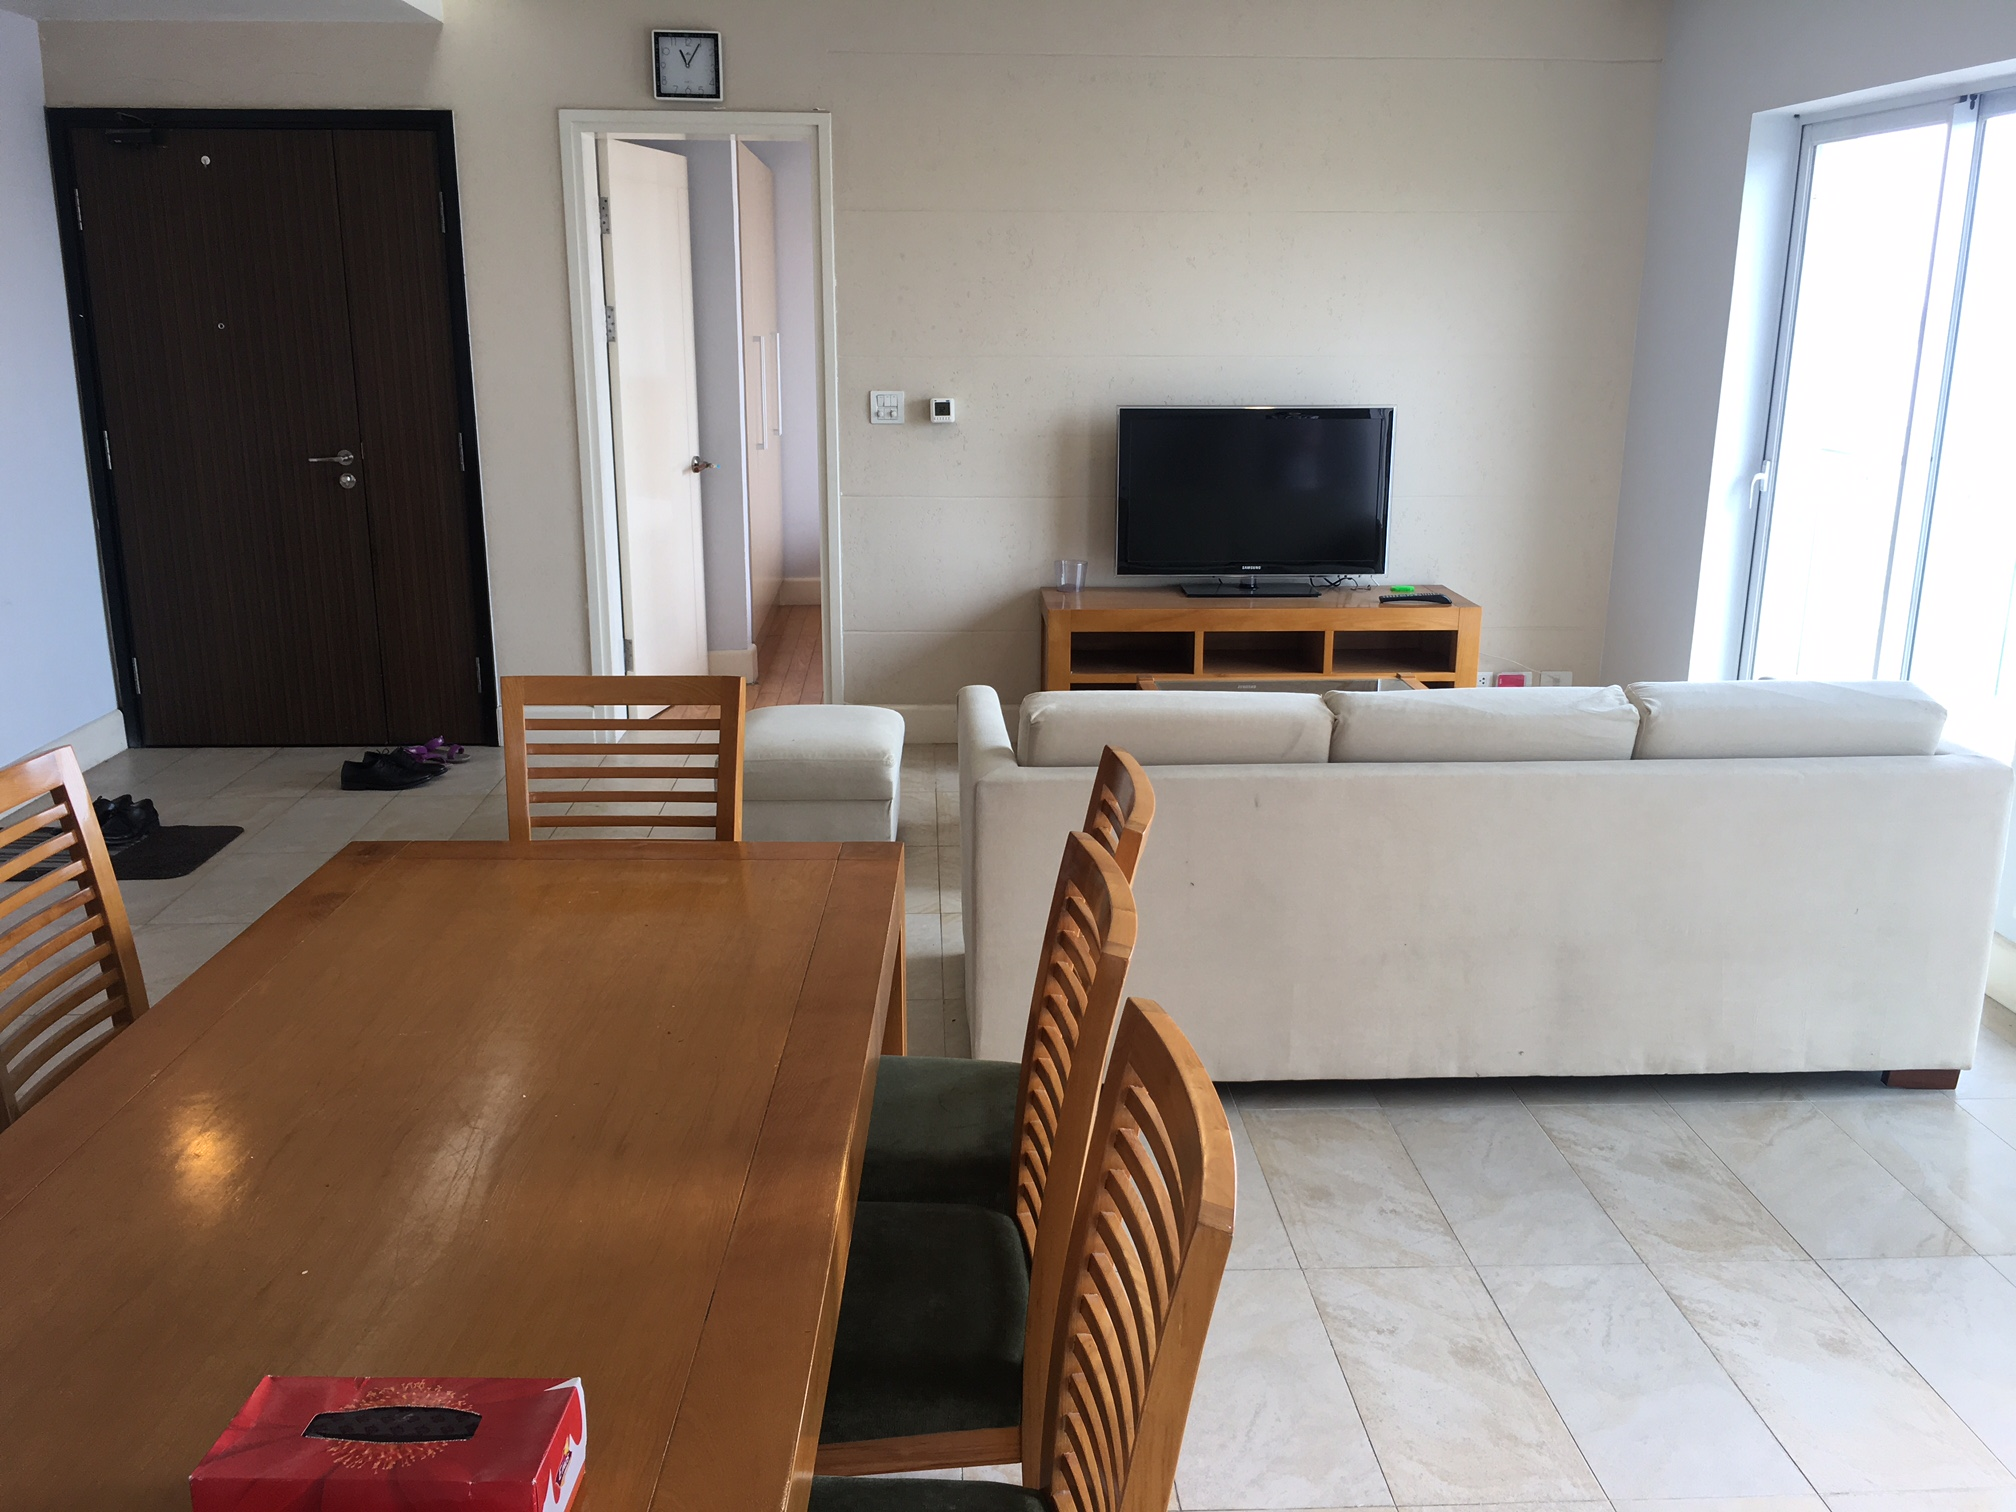 Beautiful apartment in Golden Westlake, Tay Ho, Hanoi for rent